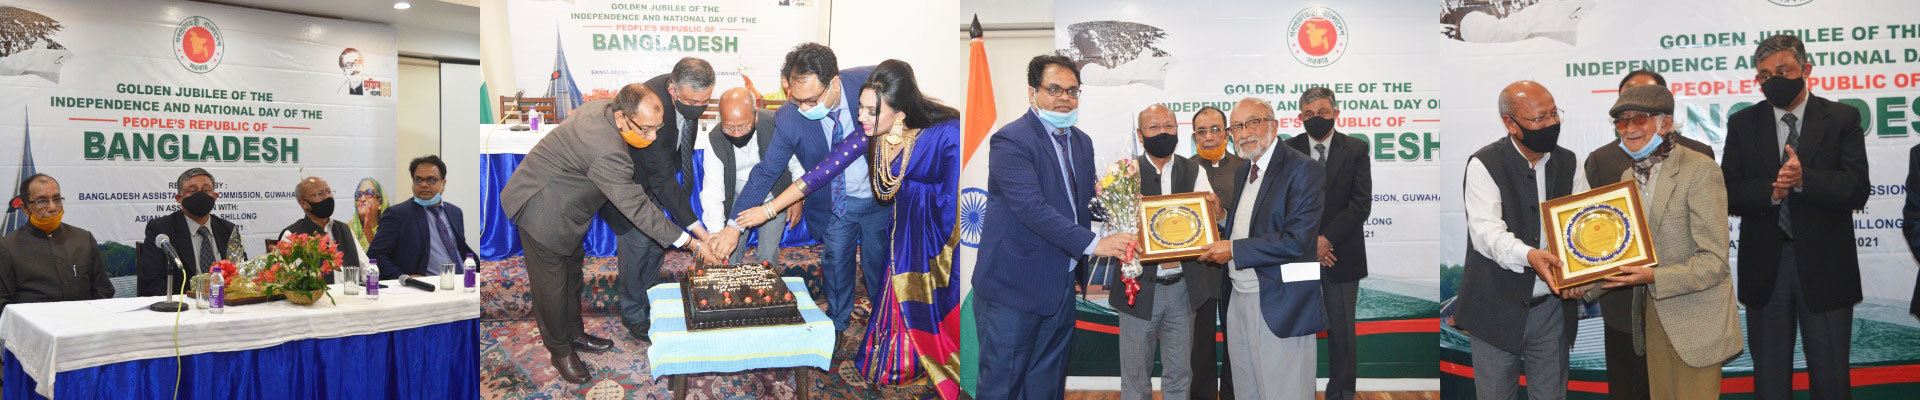 The Golden Jubilee of Bangladesh Independence and National Day at Asian Confluence, Shillong